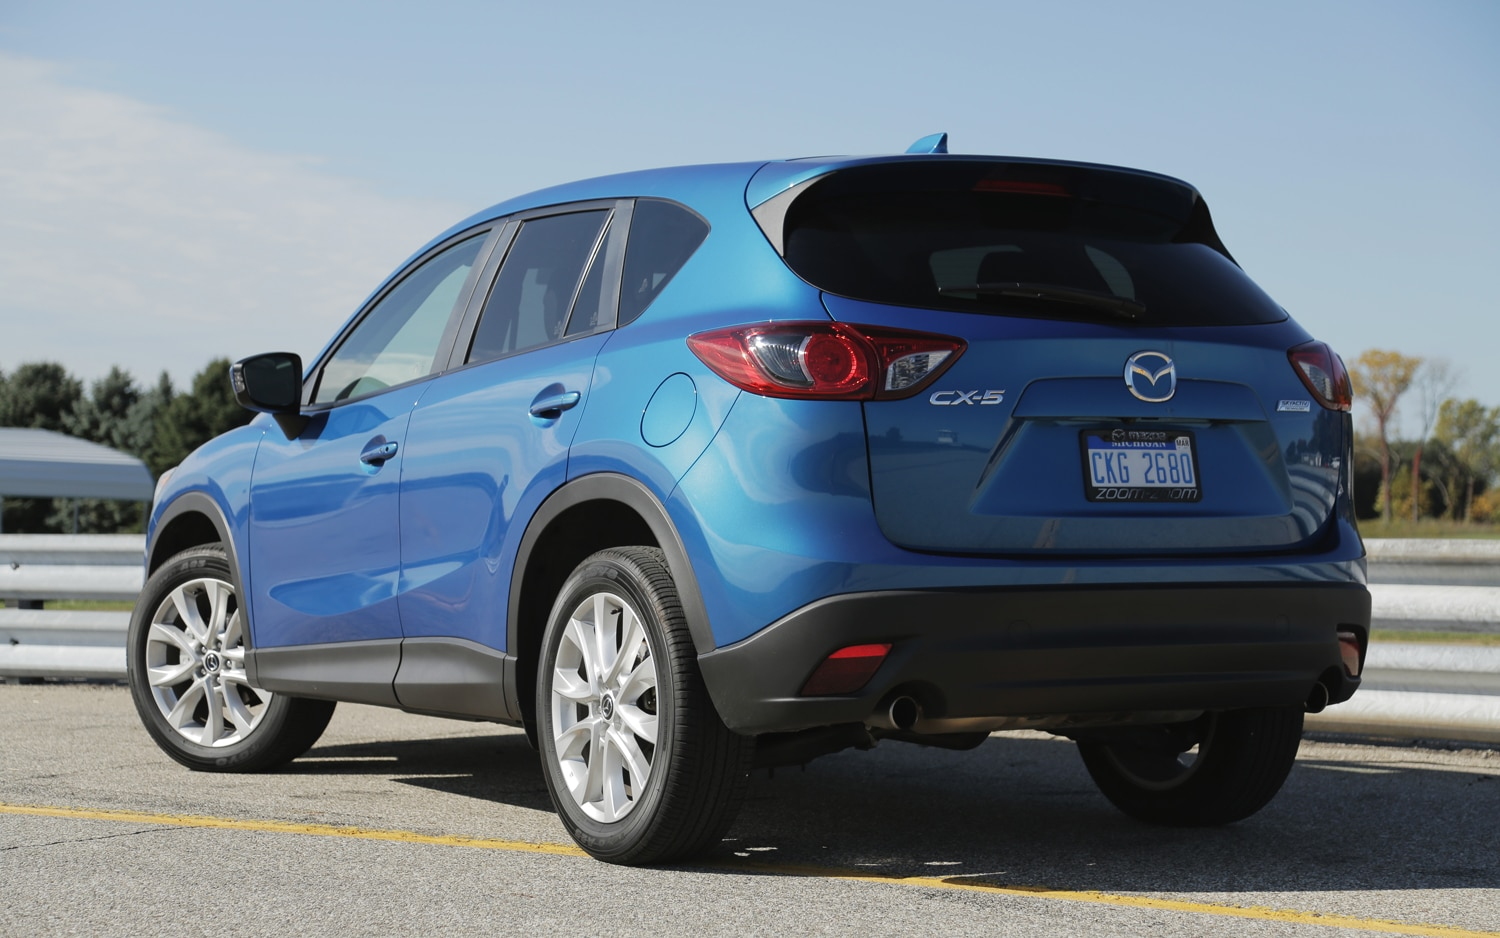 http://st.automobilemag.com/uploads/sites/11/2012/11/2013-Mazda-CX-5-Grand-Touring-rear-left-view.jpg